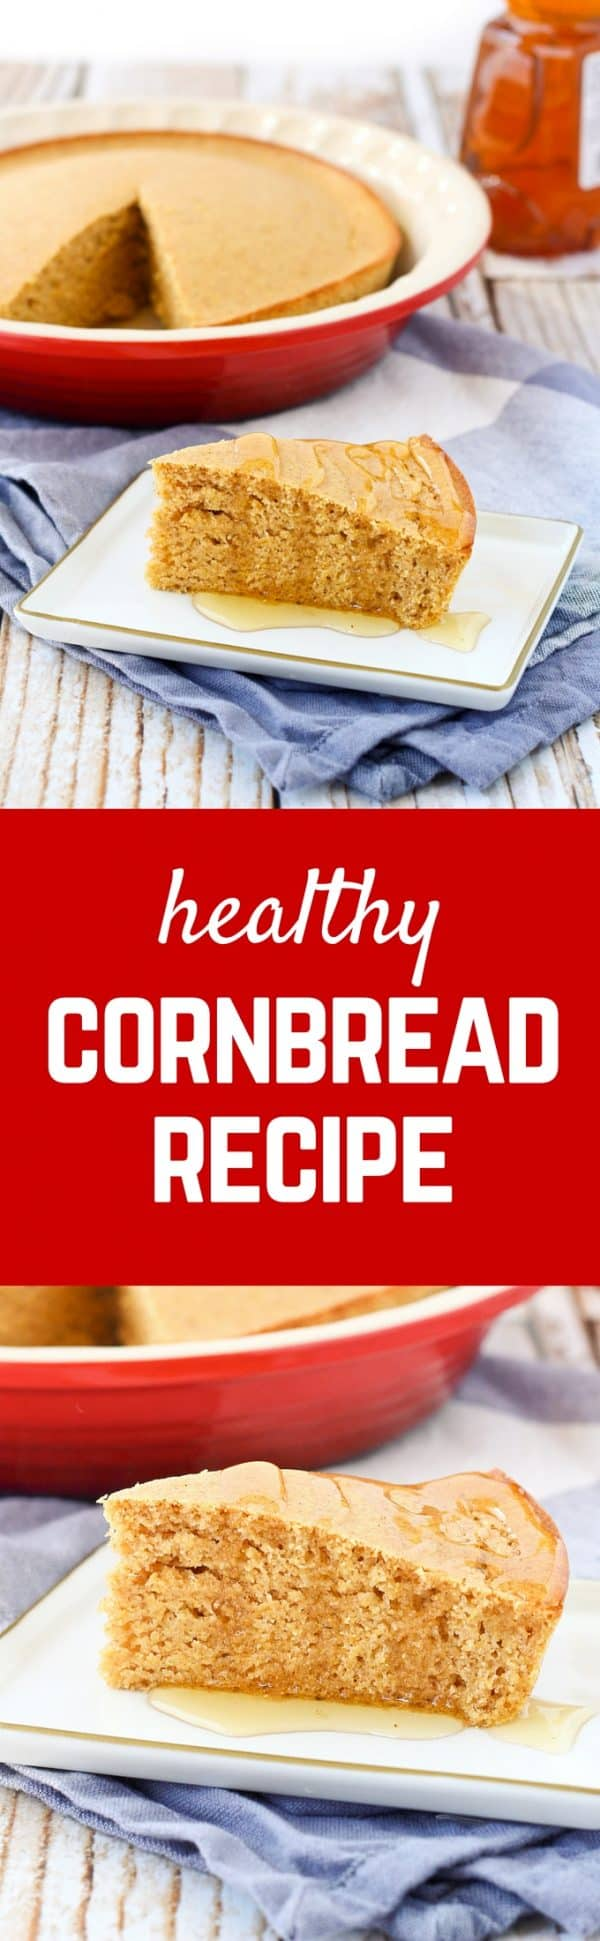 Serve up a slice of cornbread with your chili....without the guilt! This slimmed-down healthy cornbread is just as satisfying as traditional cornbread, and you can feel better about eating it. Get the easy recipe on RachelCooks.com!